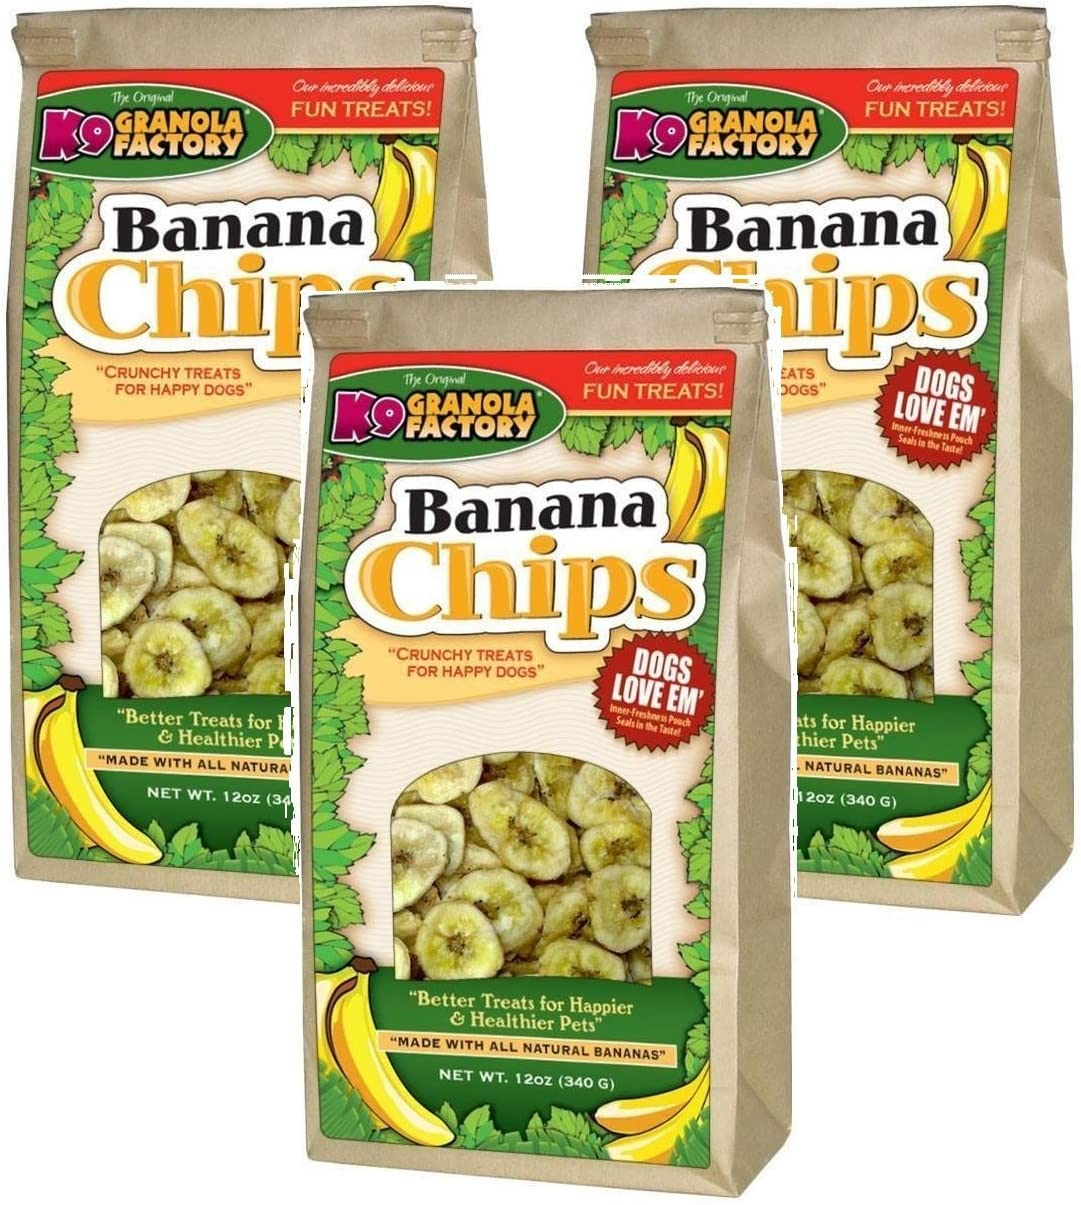 3 Pack K9 Granola Factory Banana Chips Dog Treats, 12 Ounces each